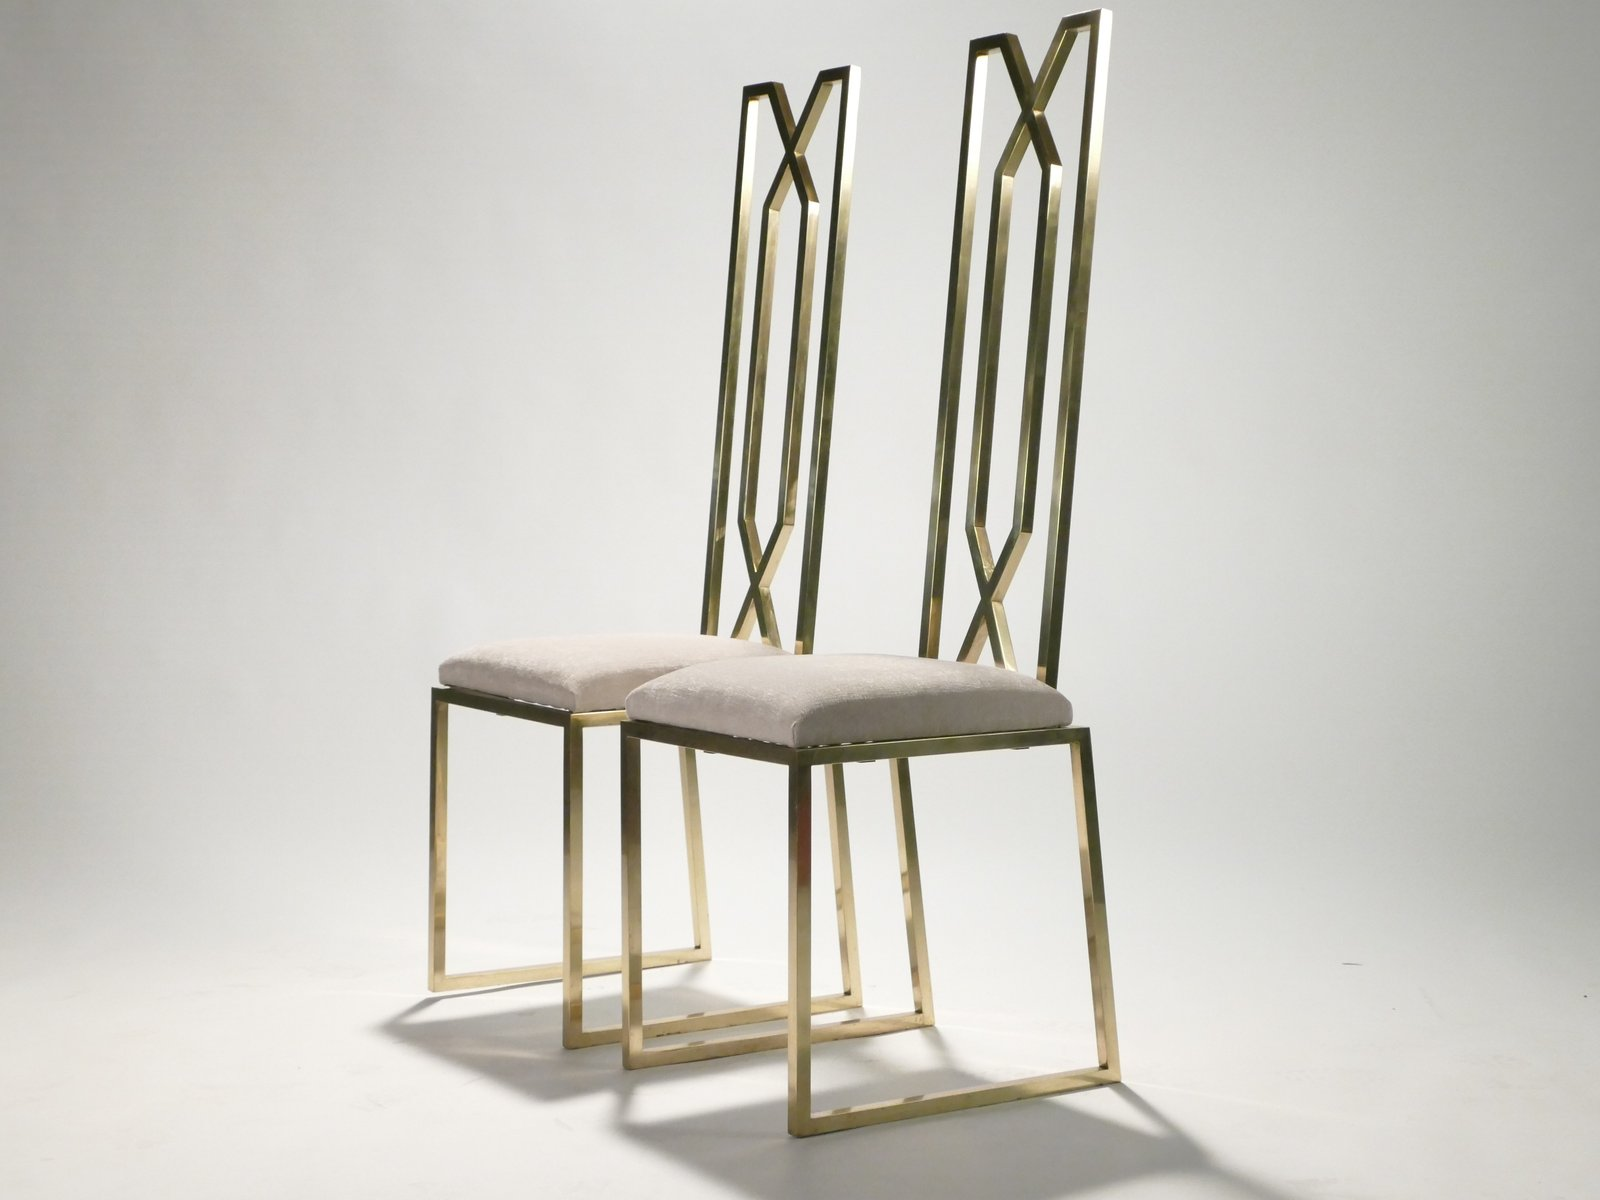 Brass Chairs by Willy Rizzo for Maison Jansen 1970s Set of 2 for